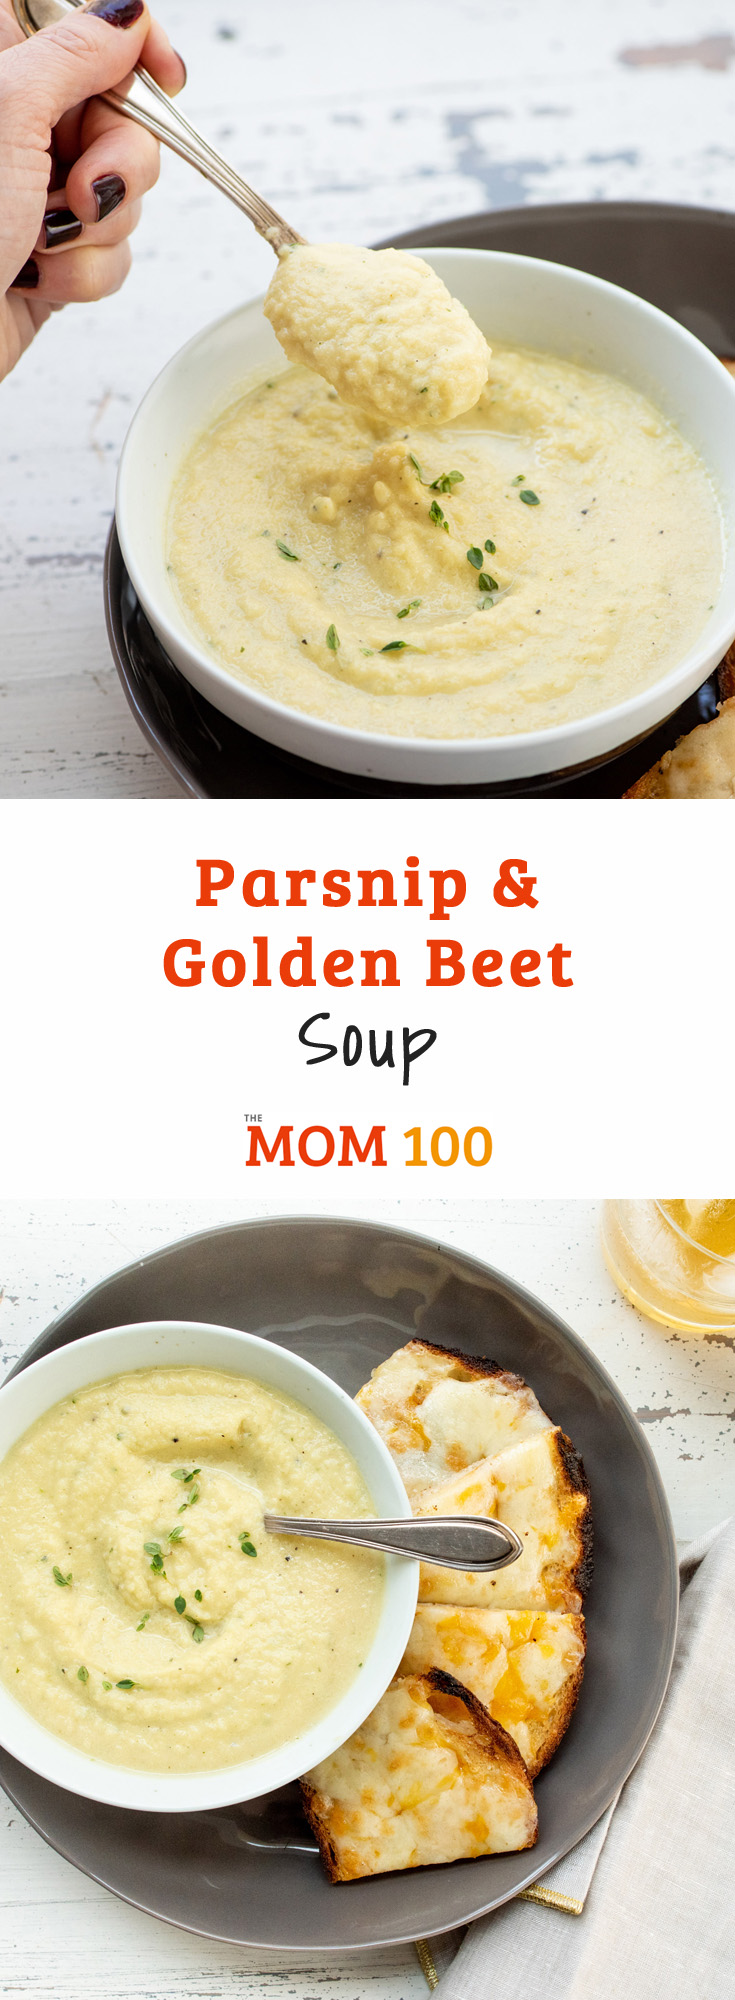 Parsnip and Golden Beet Soup